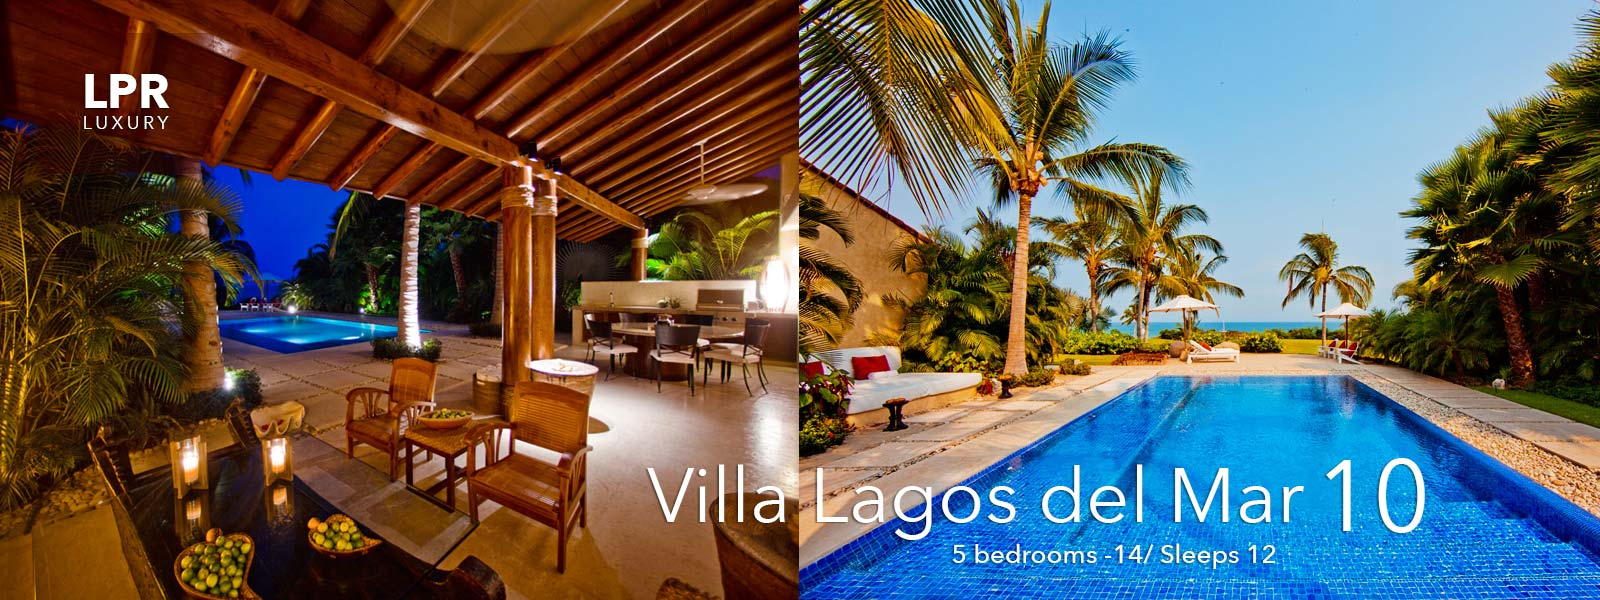 Villa Lagos del Mar 10 - Punta Mita Resort - Mexico Vacation Rentals